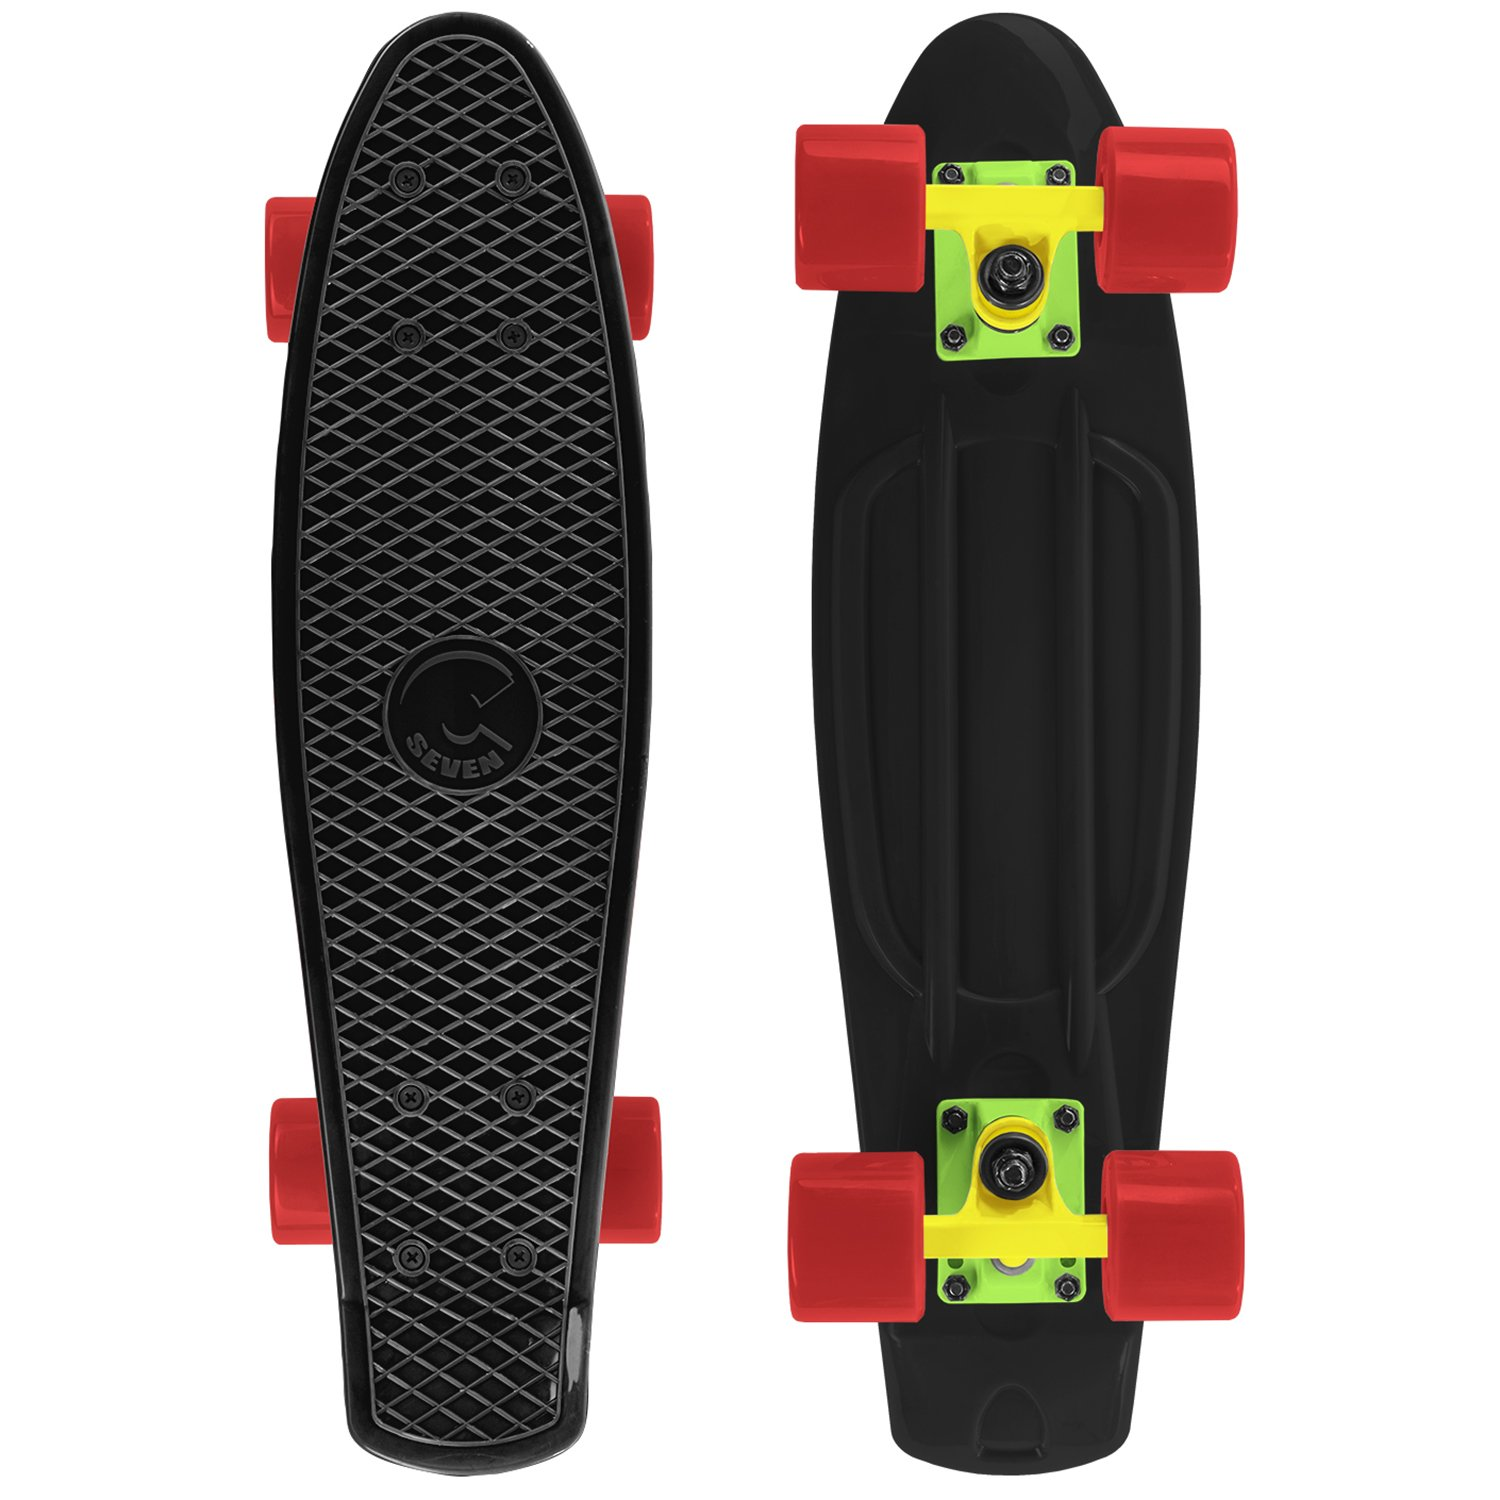 Cal 7 Complete Mini Cruiser Skateboard, 22 Inch Plastic in Retro Design (Black, Yellow, and Red) by Cal 7